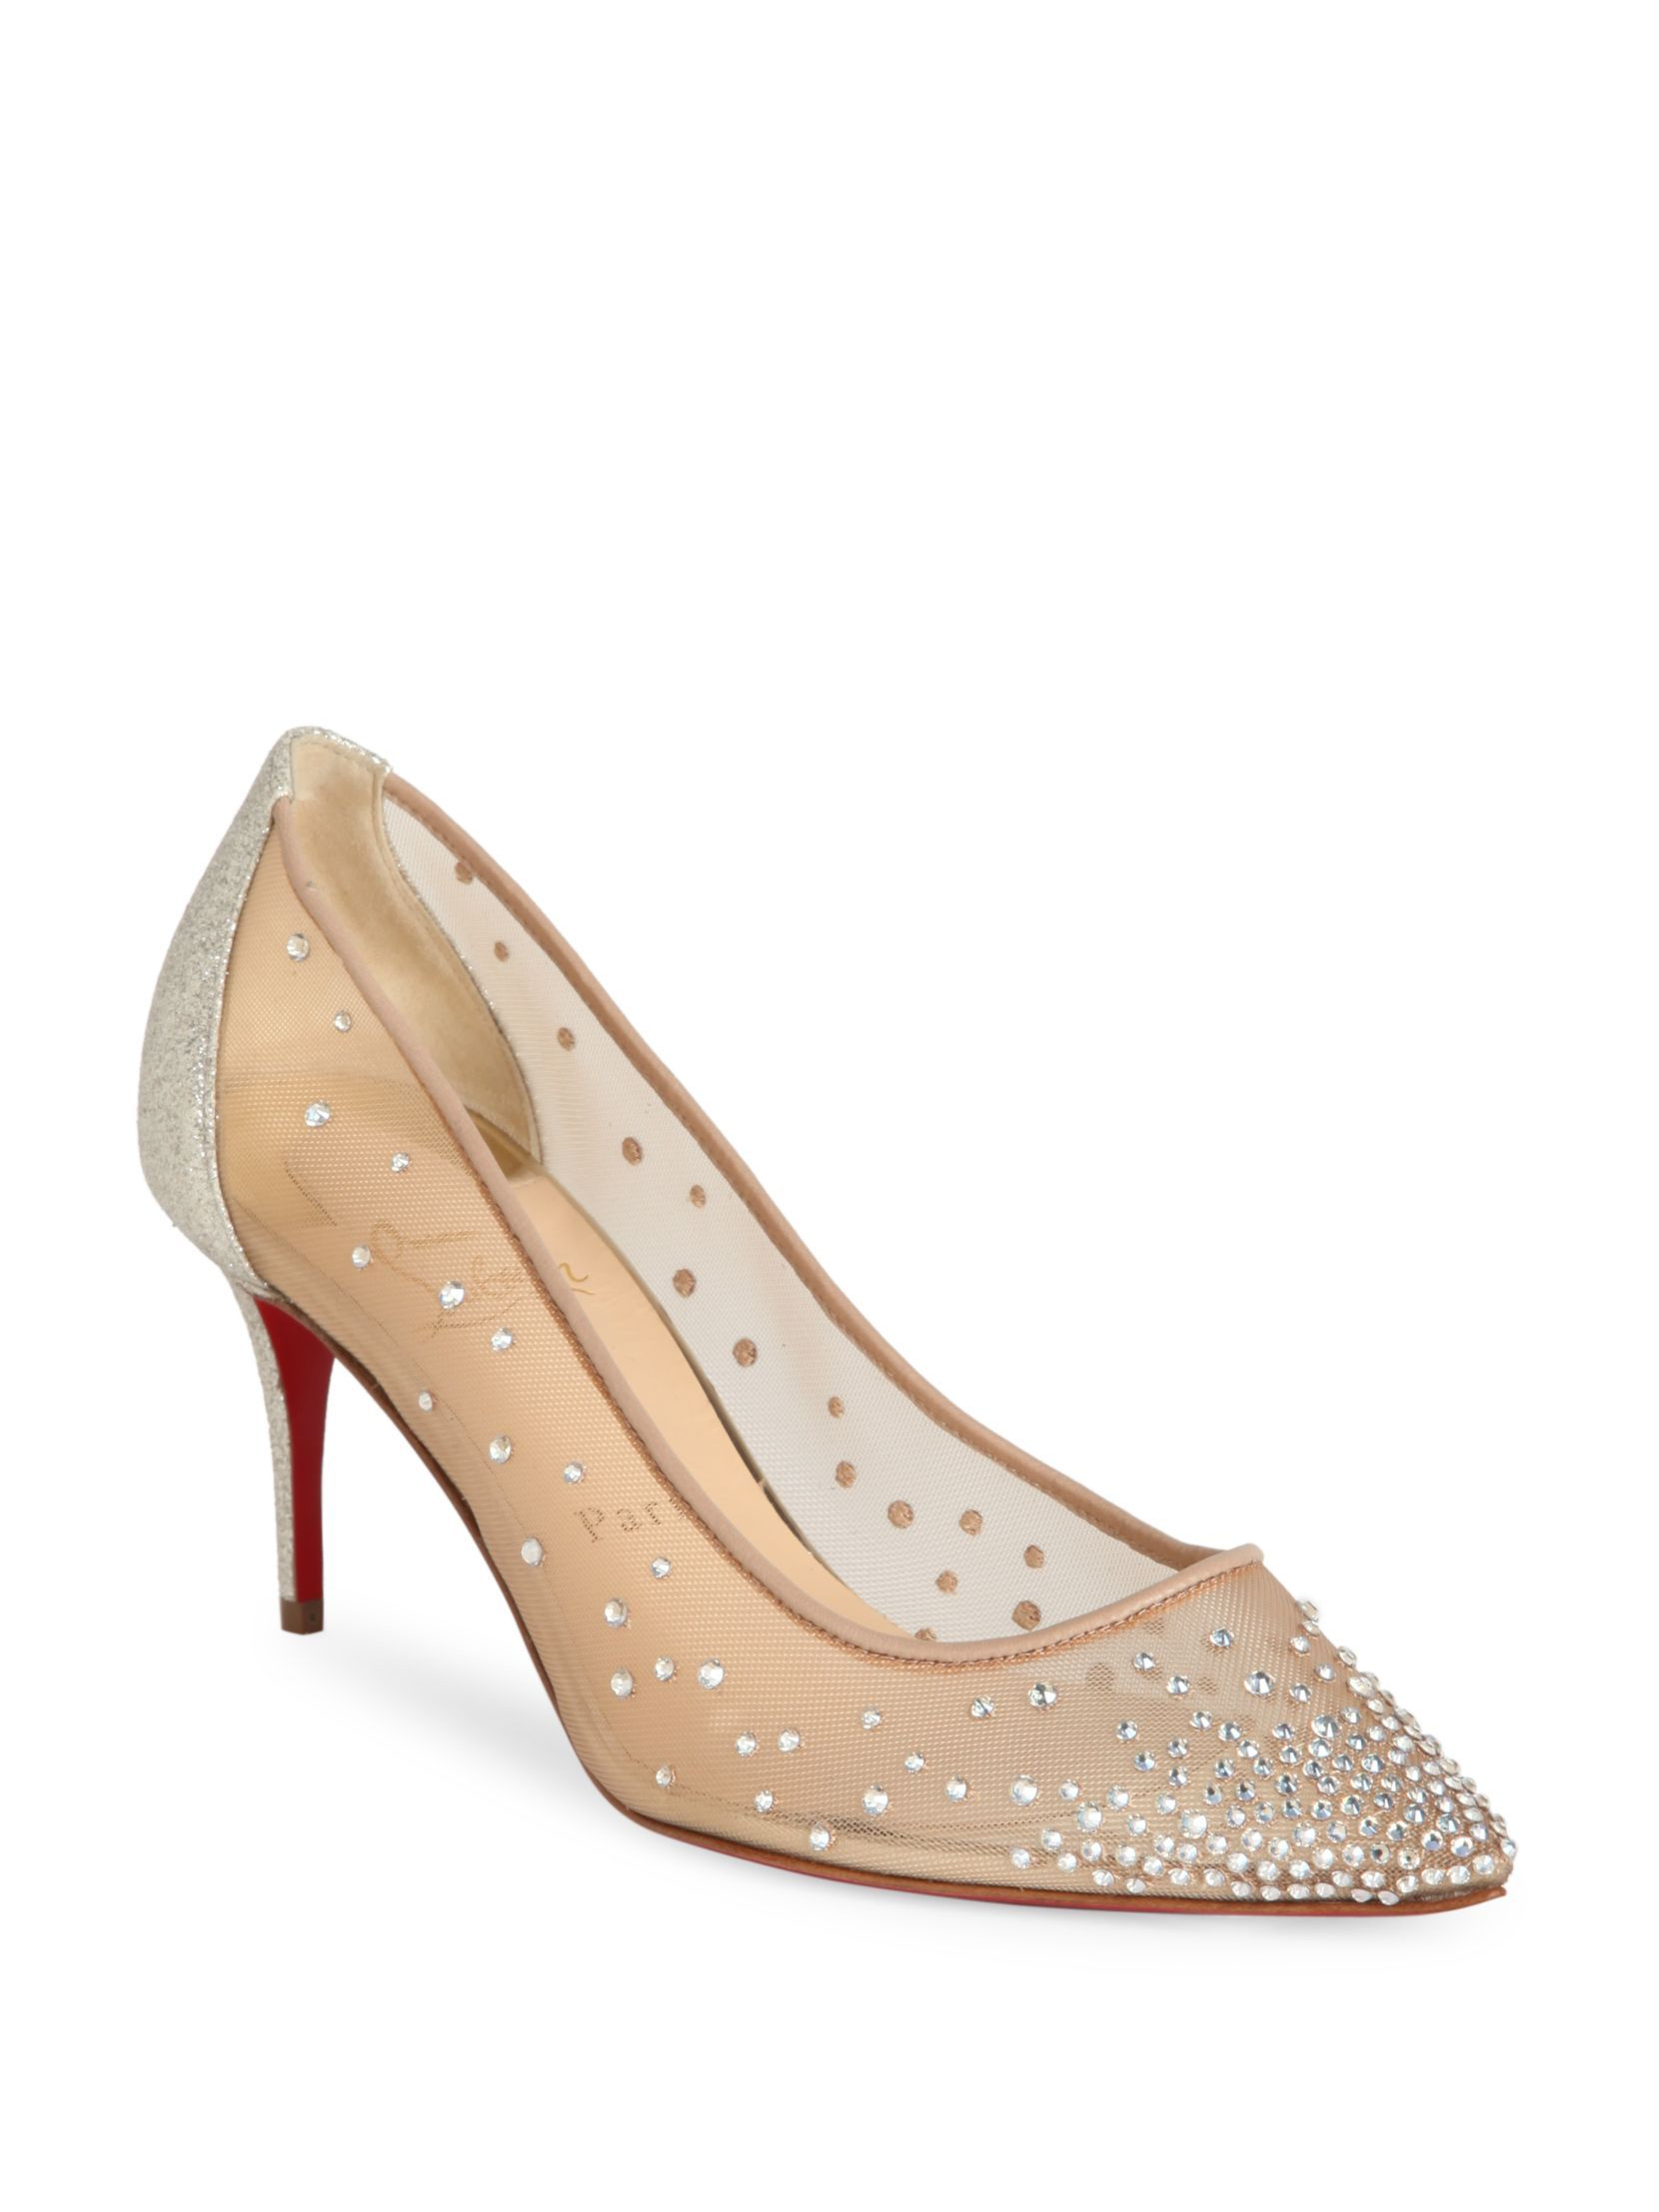 aef52036da7a Christian Louboutin Follies Strass 70 Mesh   Glitter Point Toe Pumps ...